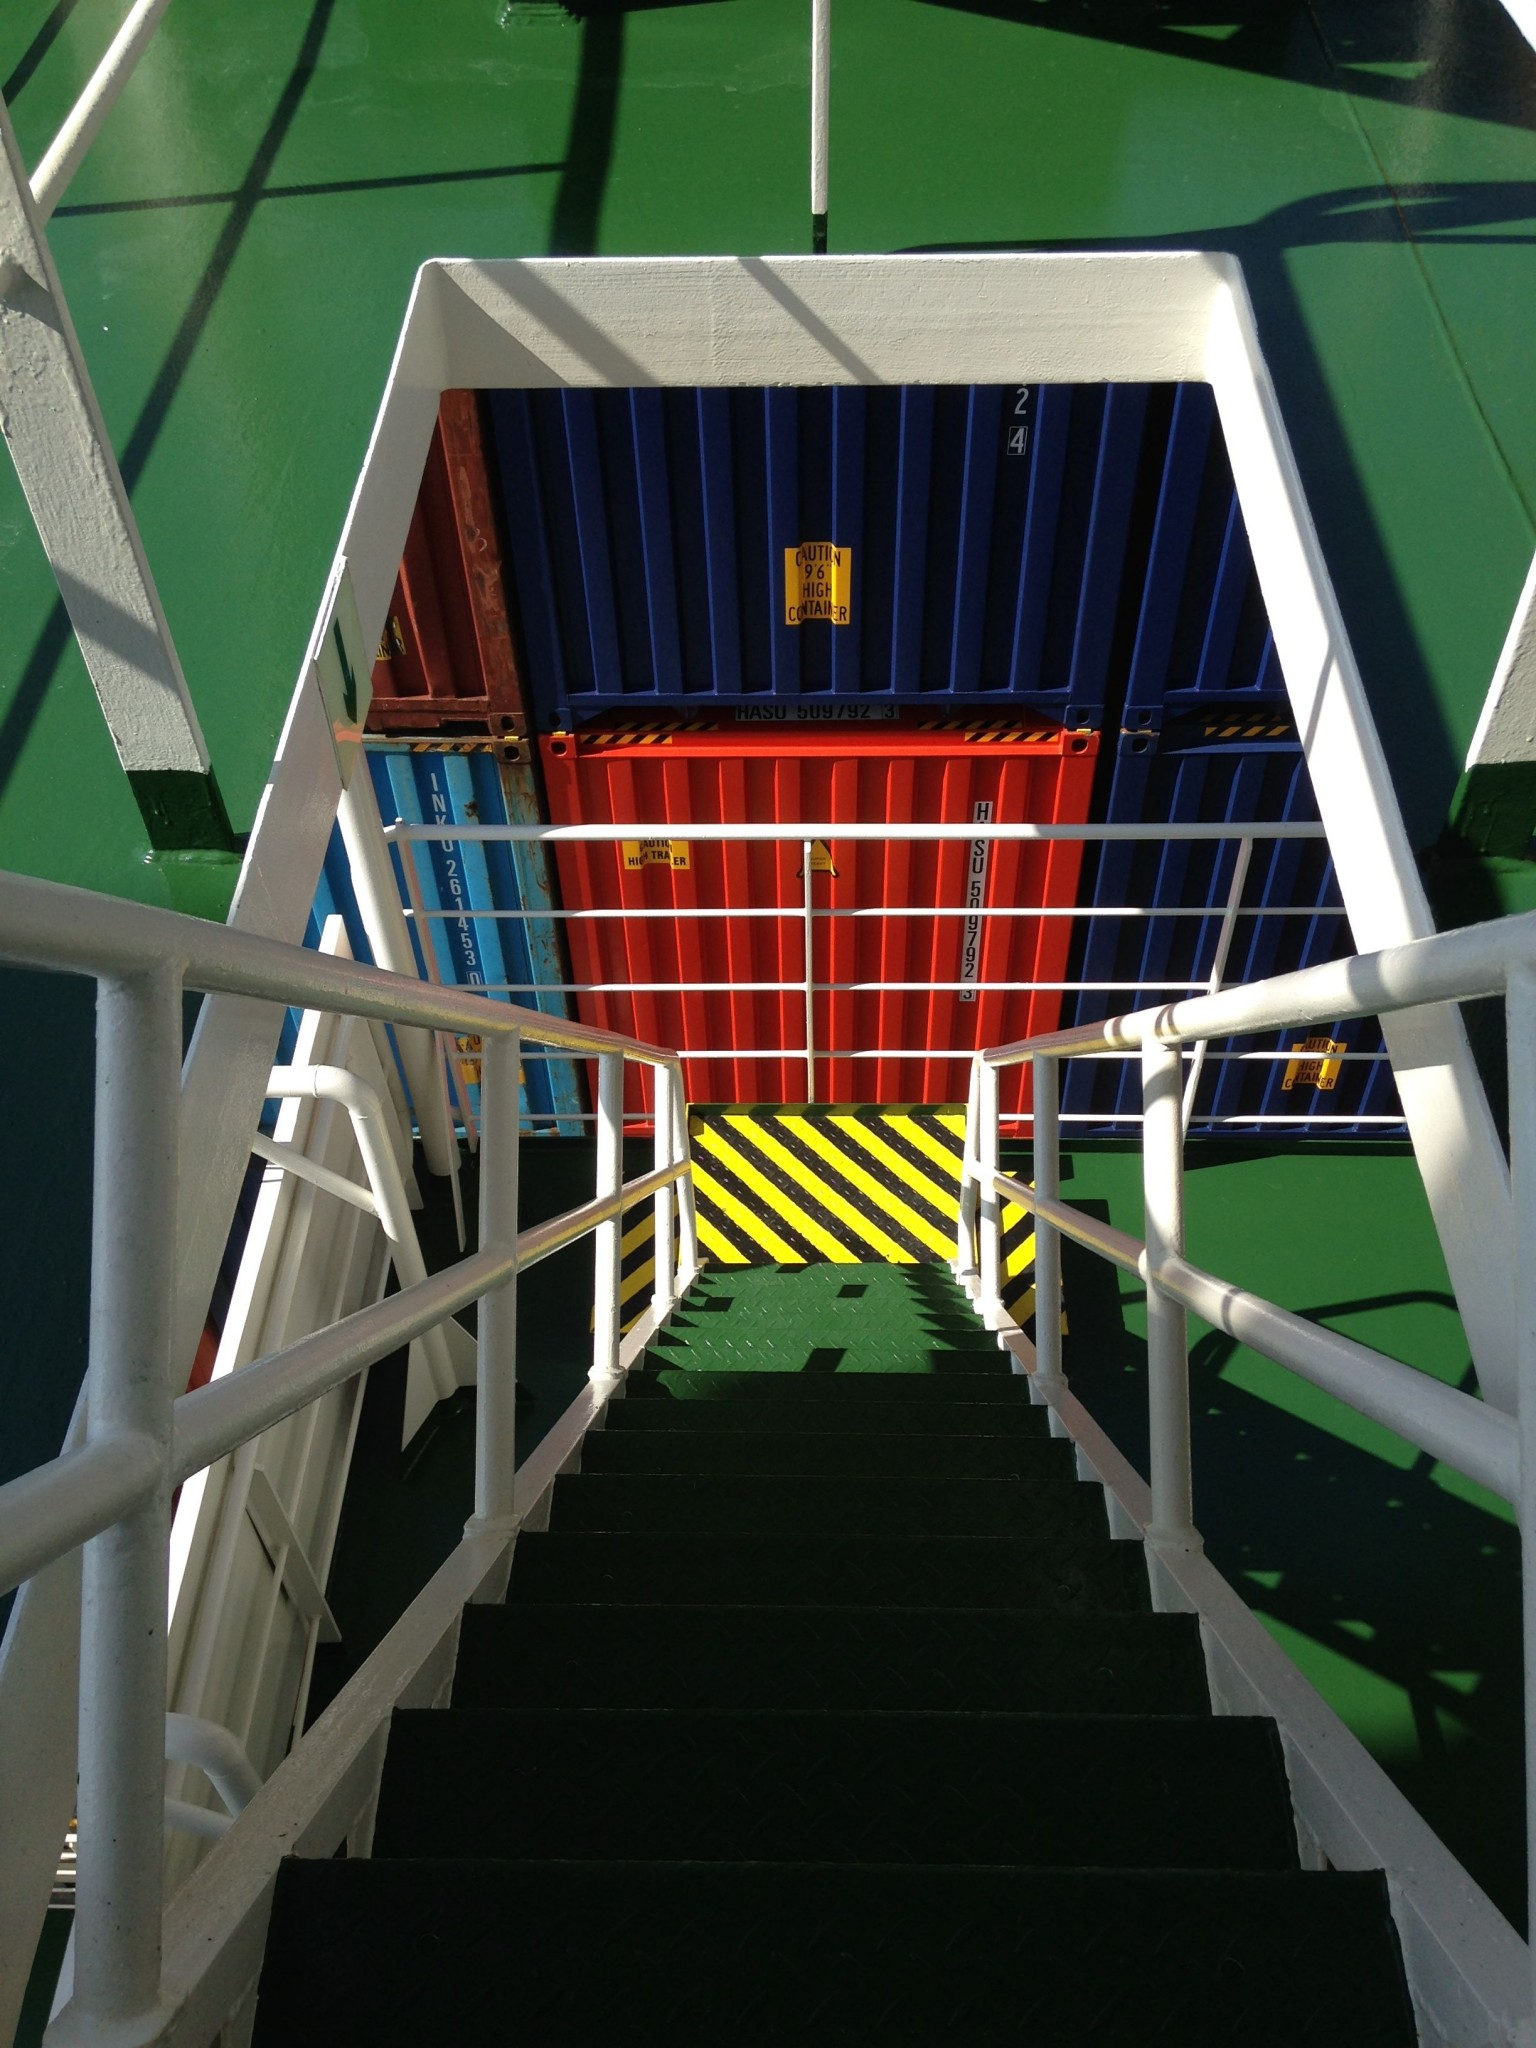 Descending the stairs of the ship.